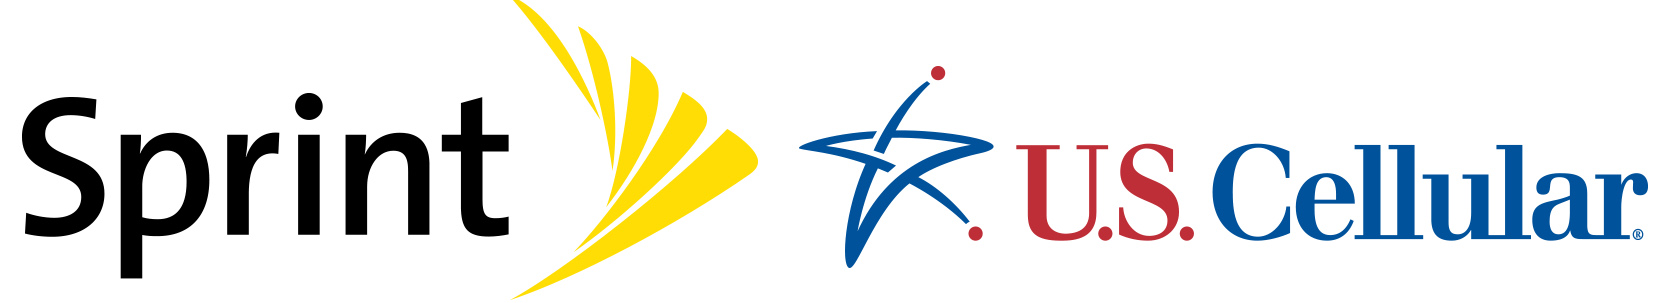 sprint-us-cellular.jpg